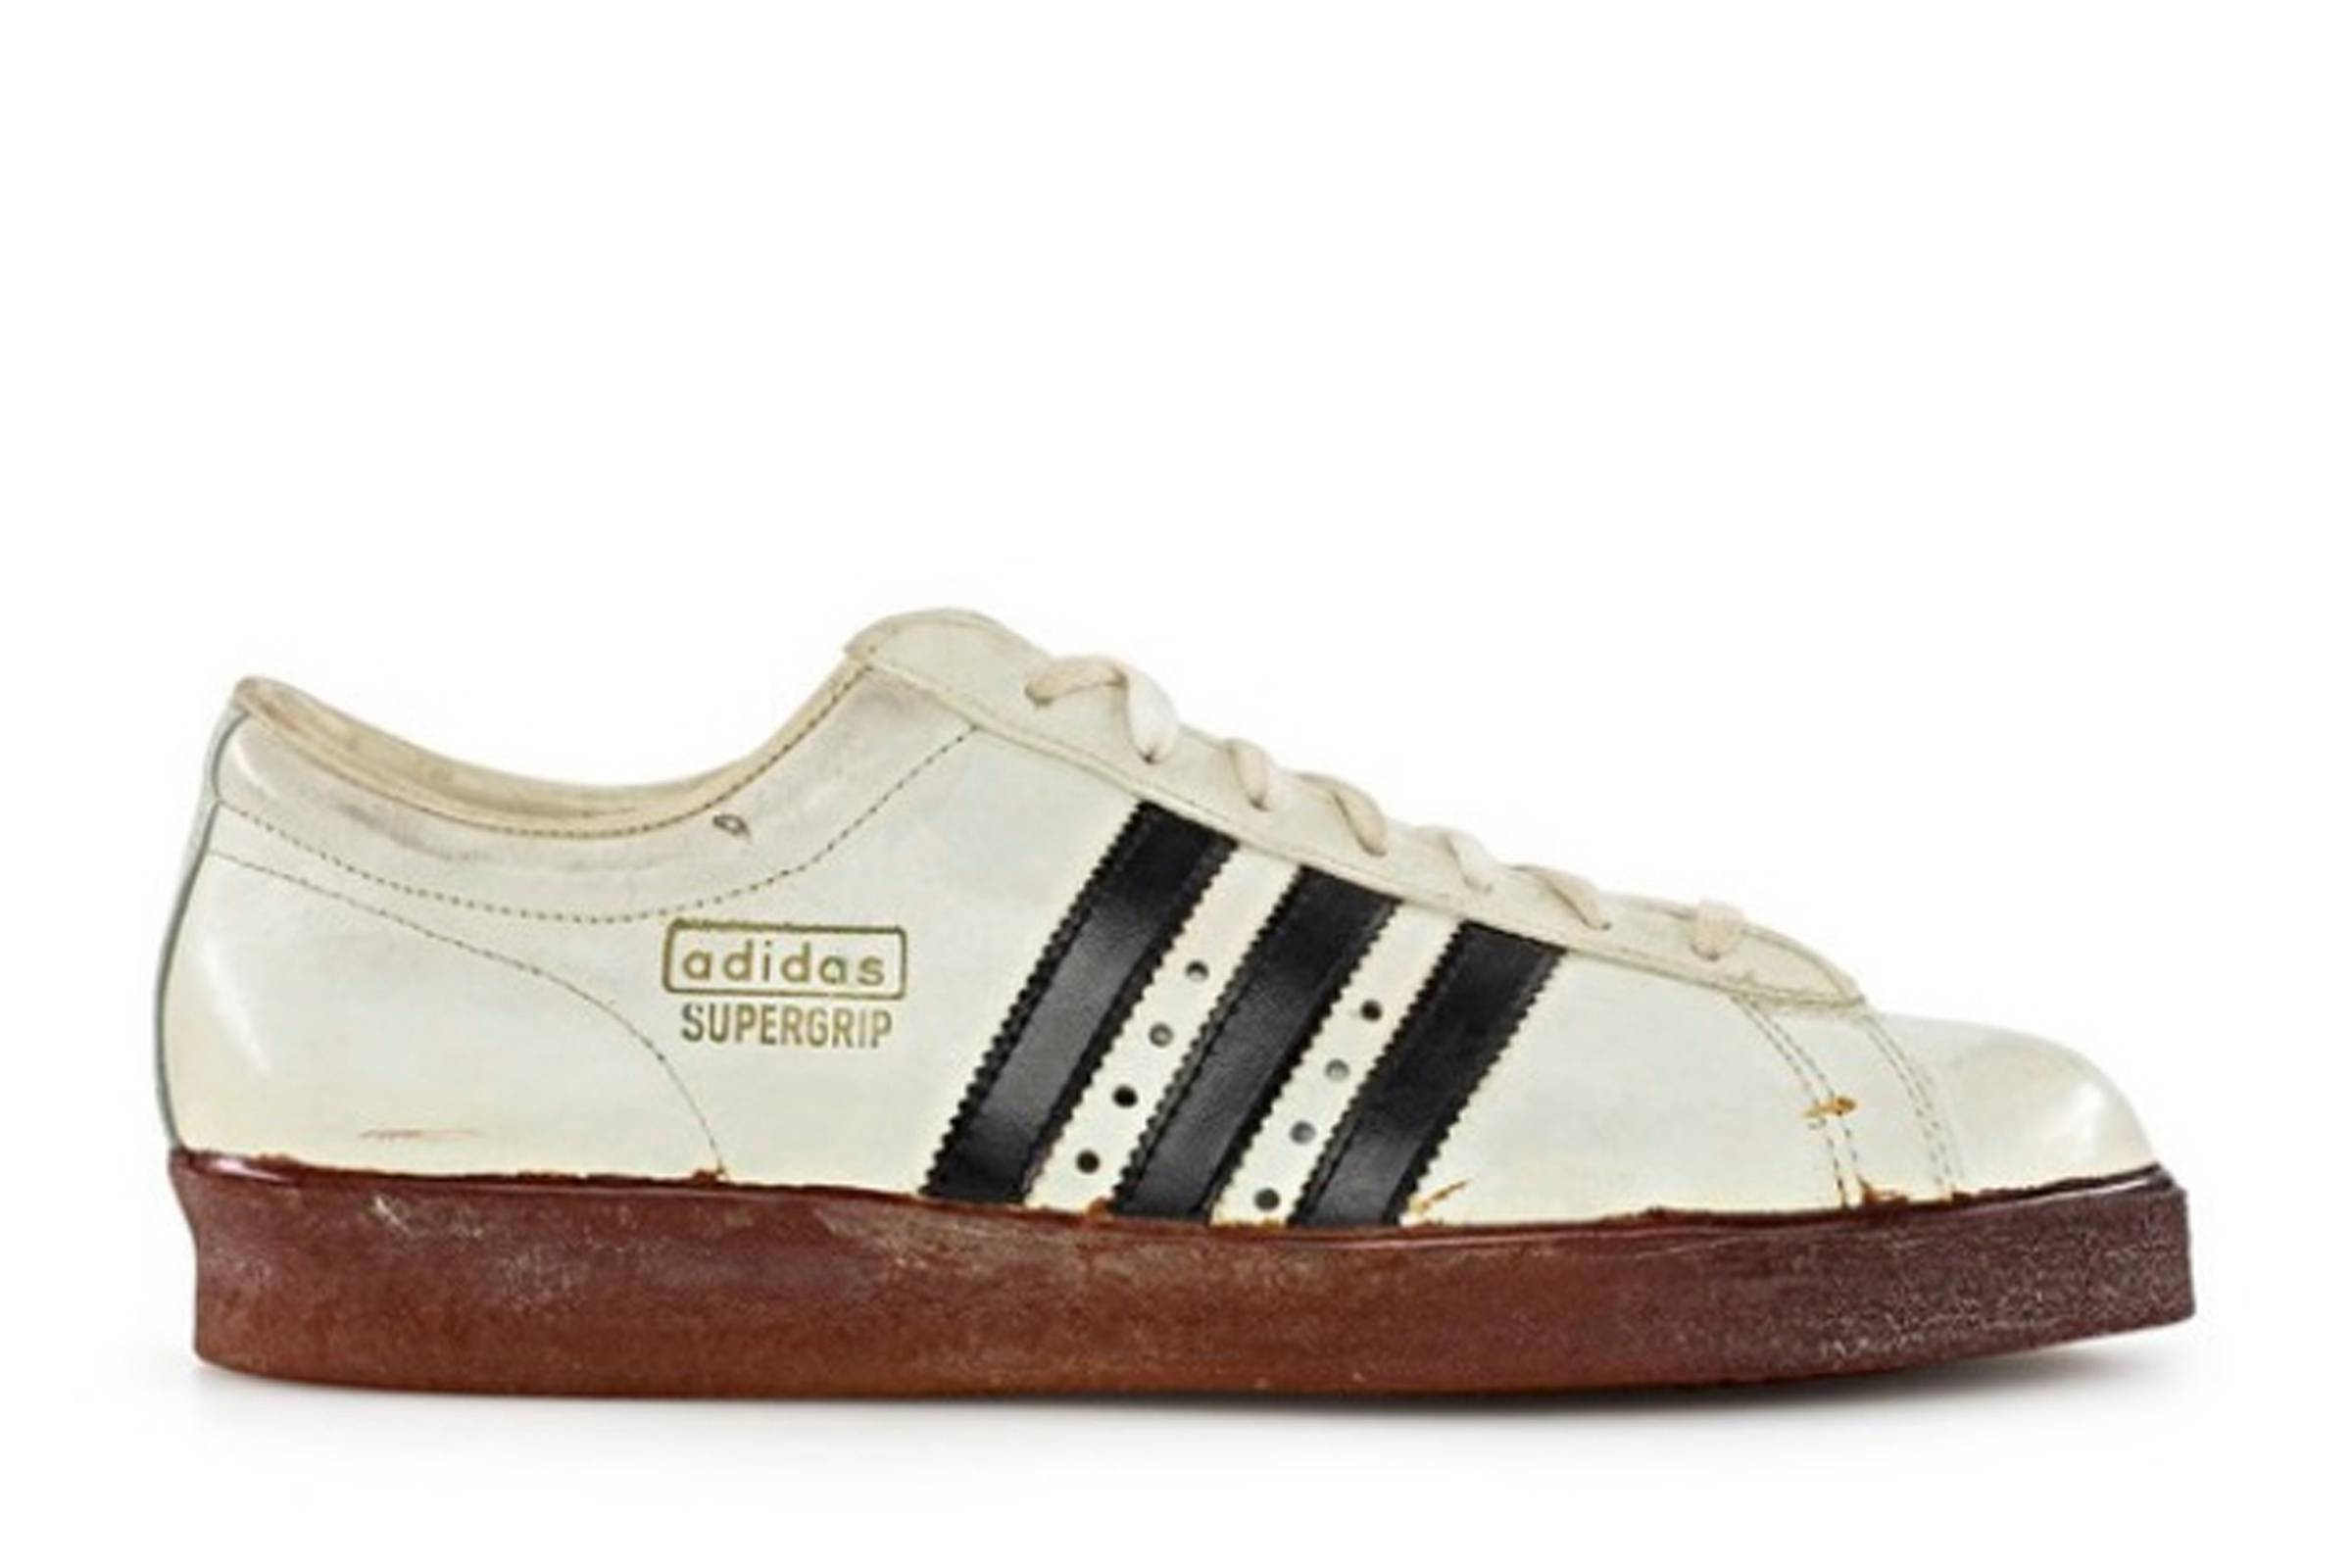 Details about Adidas Nigo X 25 Originals Pioneer Shell Toe Sneakers White Blue Gray Size 11